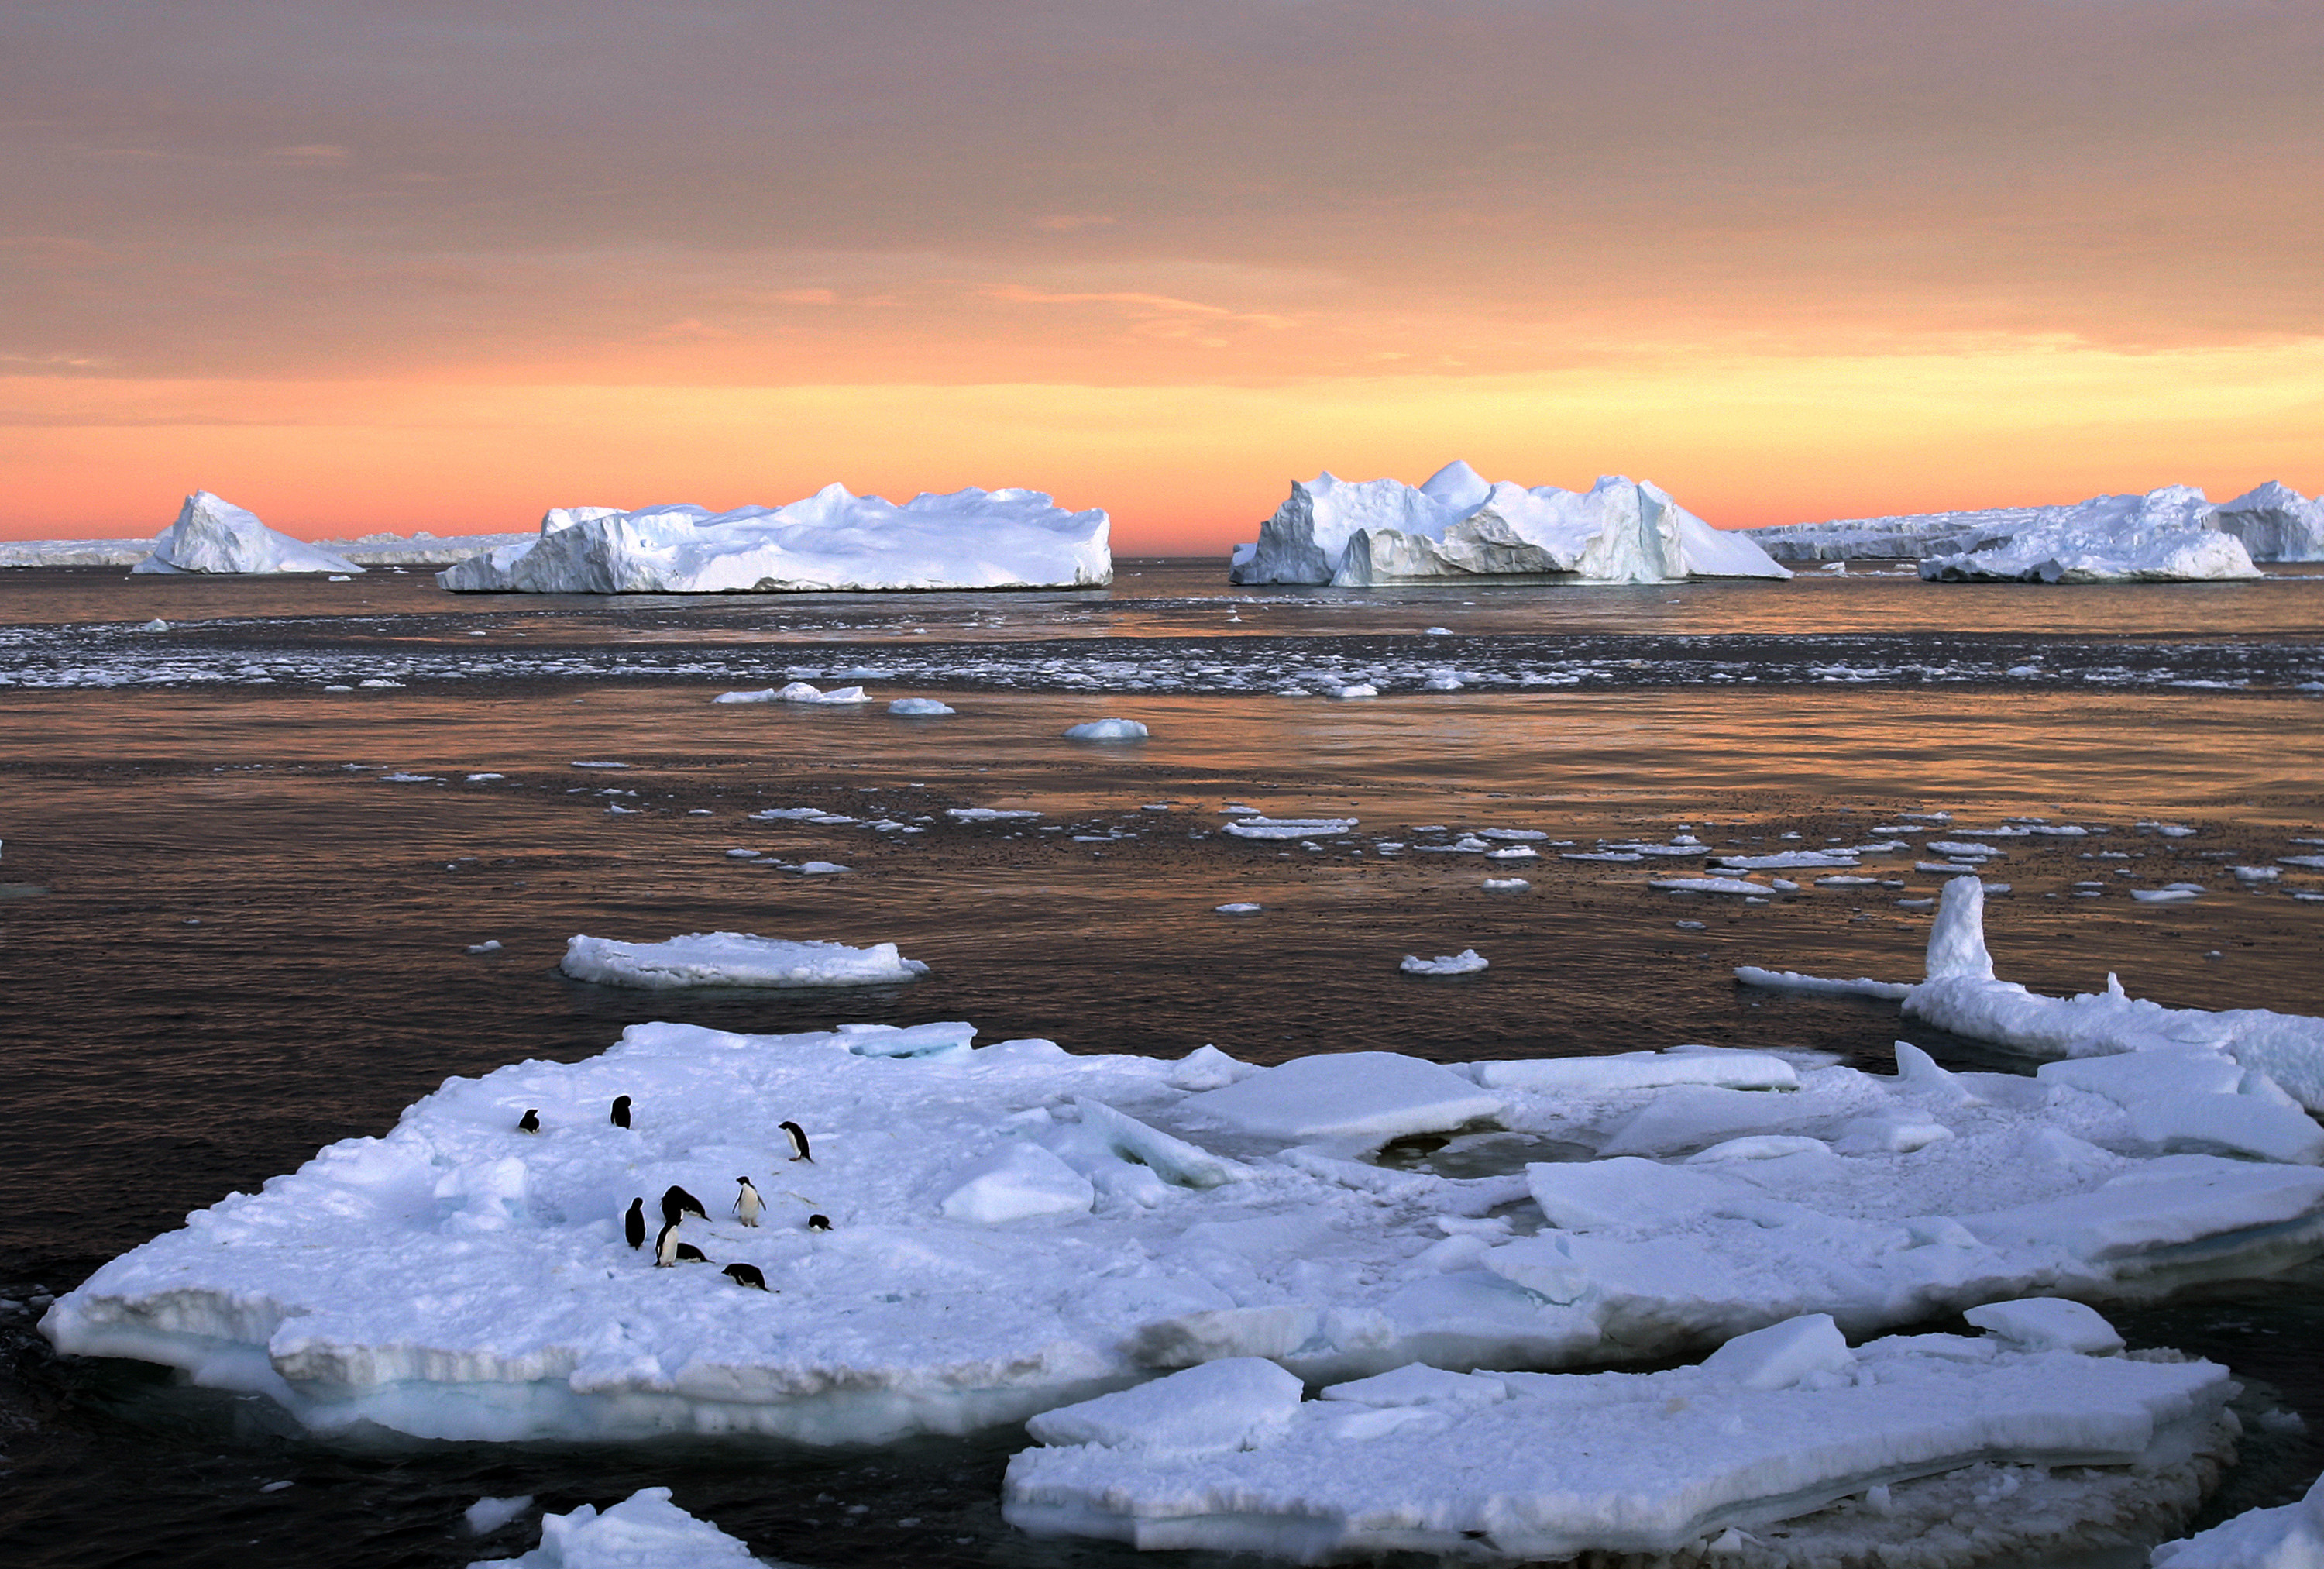 Icebergs in the ocean are shown against the back drop of an organ sky.